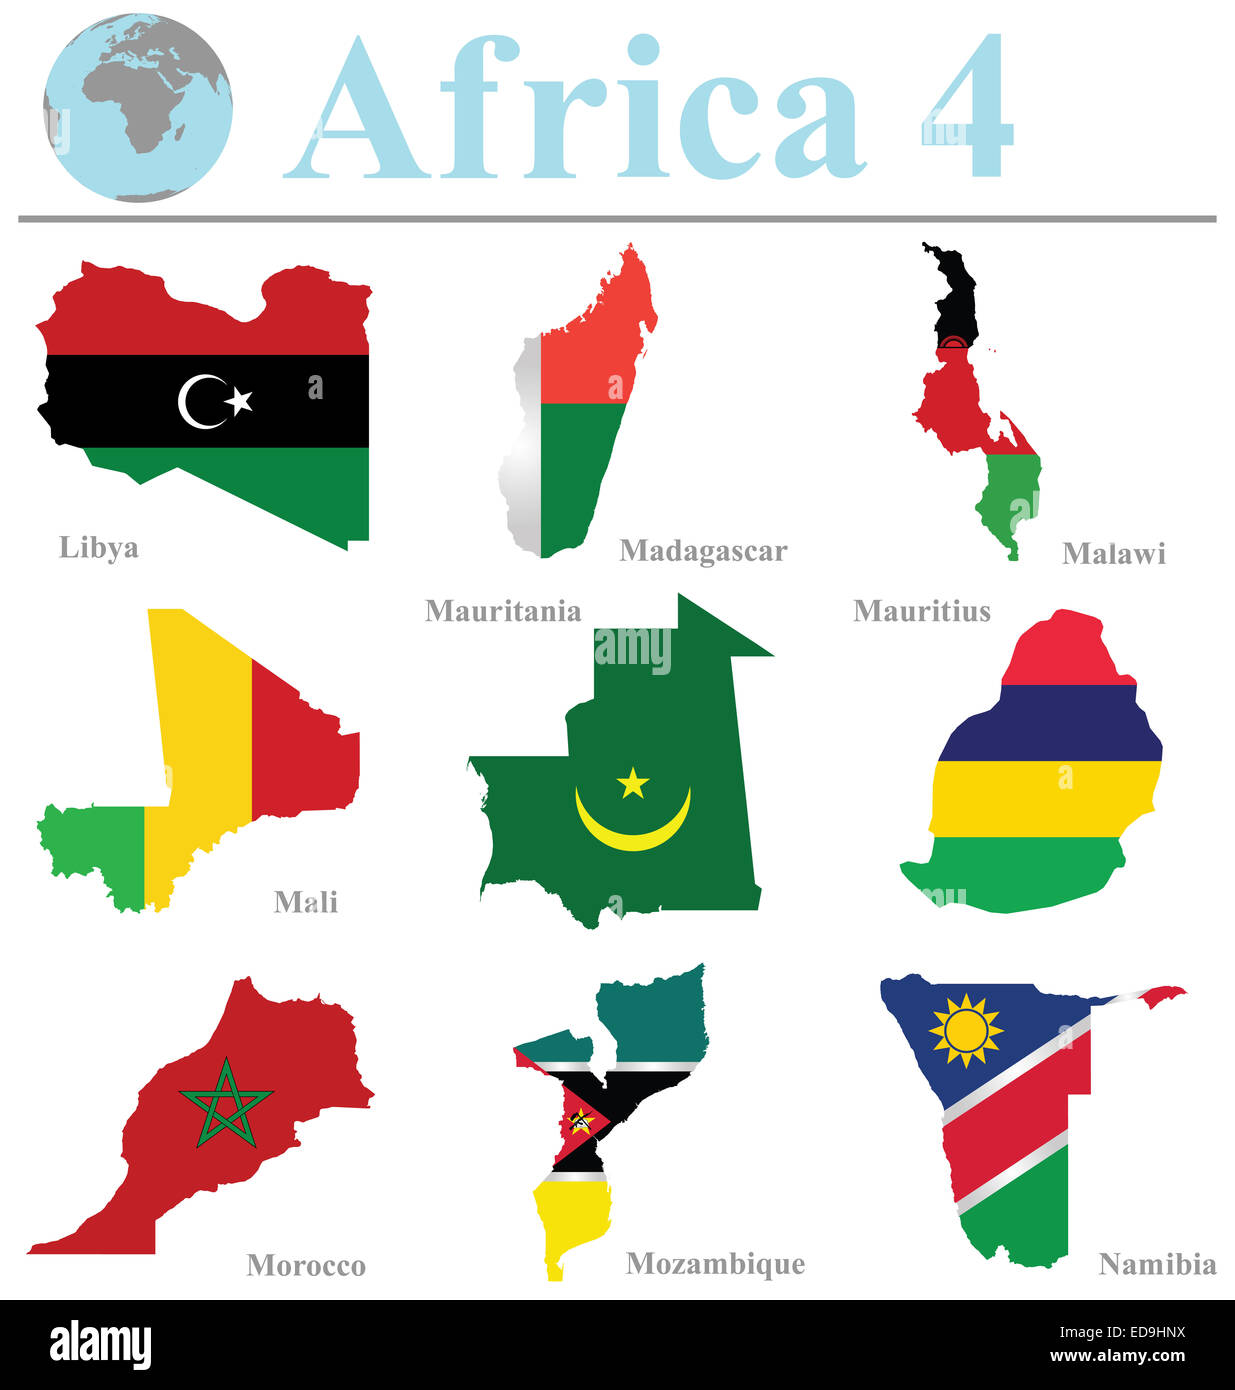 Flags of Africa collection 4 overlaid on outline map isolated on white background - Stock Image